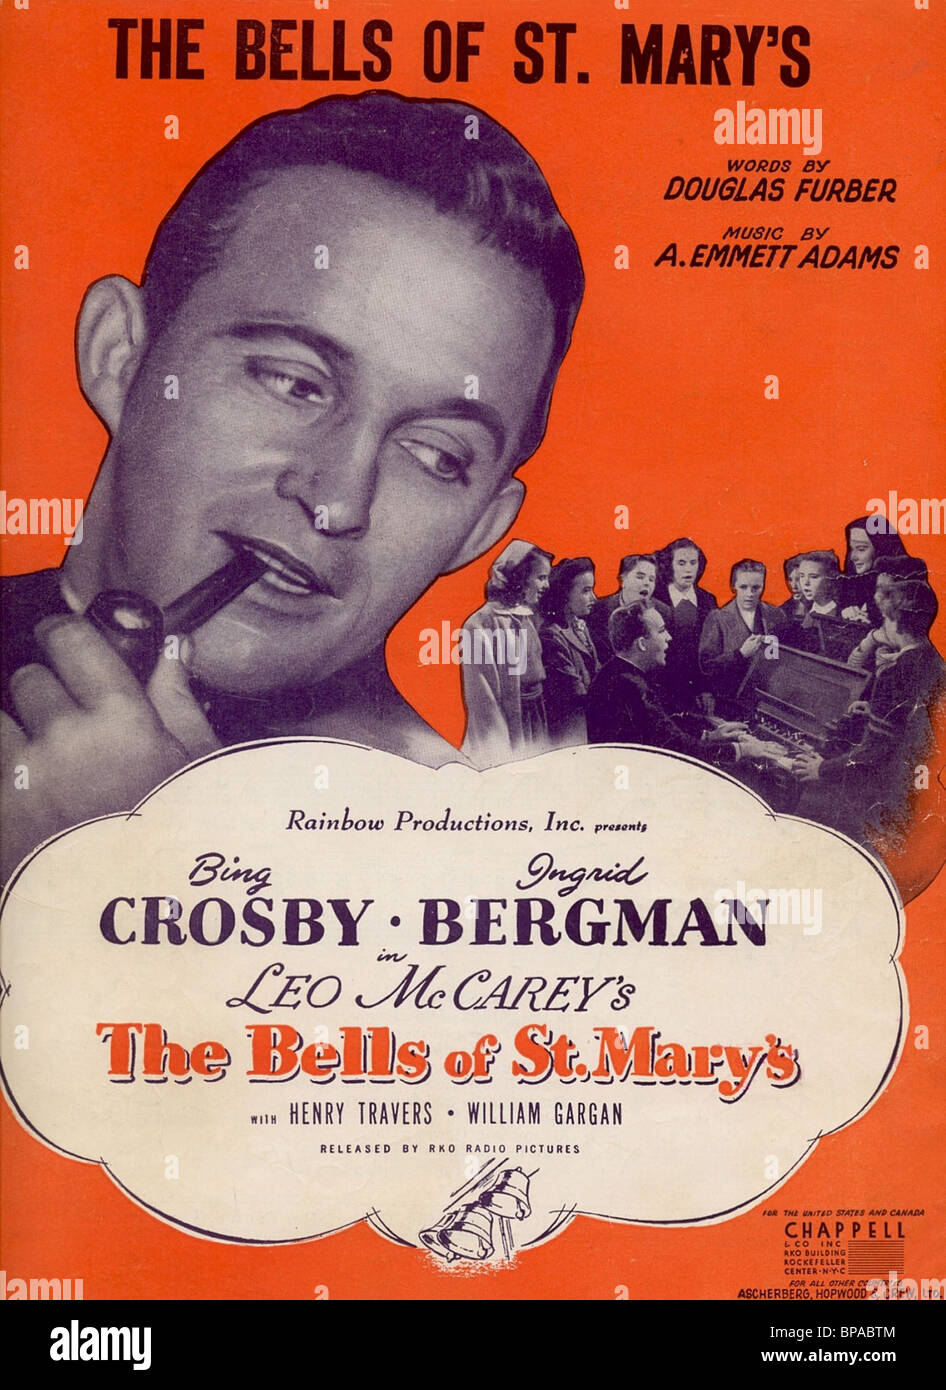 BING CROSBY FILM POSTER THE BELLS OF ST. MARY'S (1945) - Stock Image